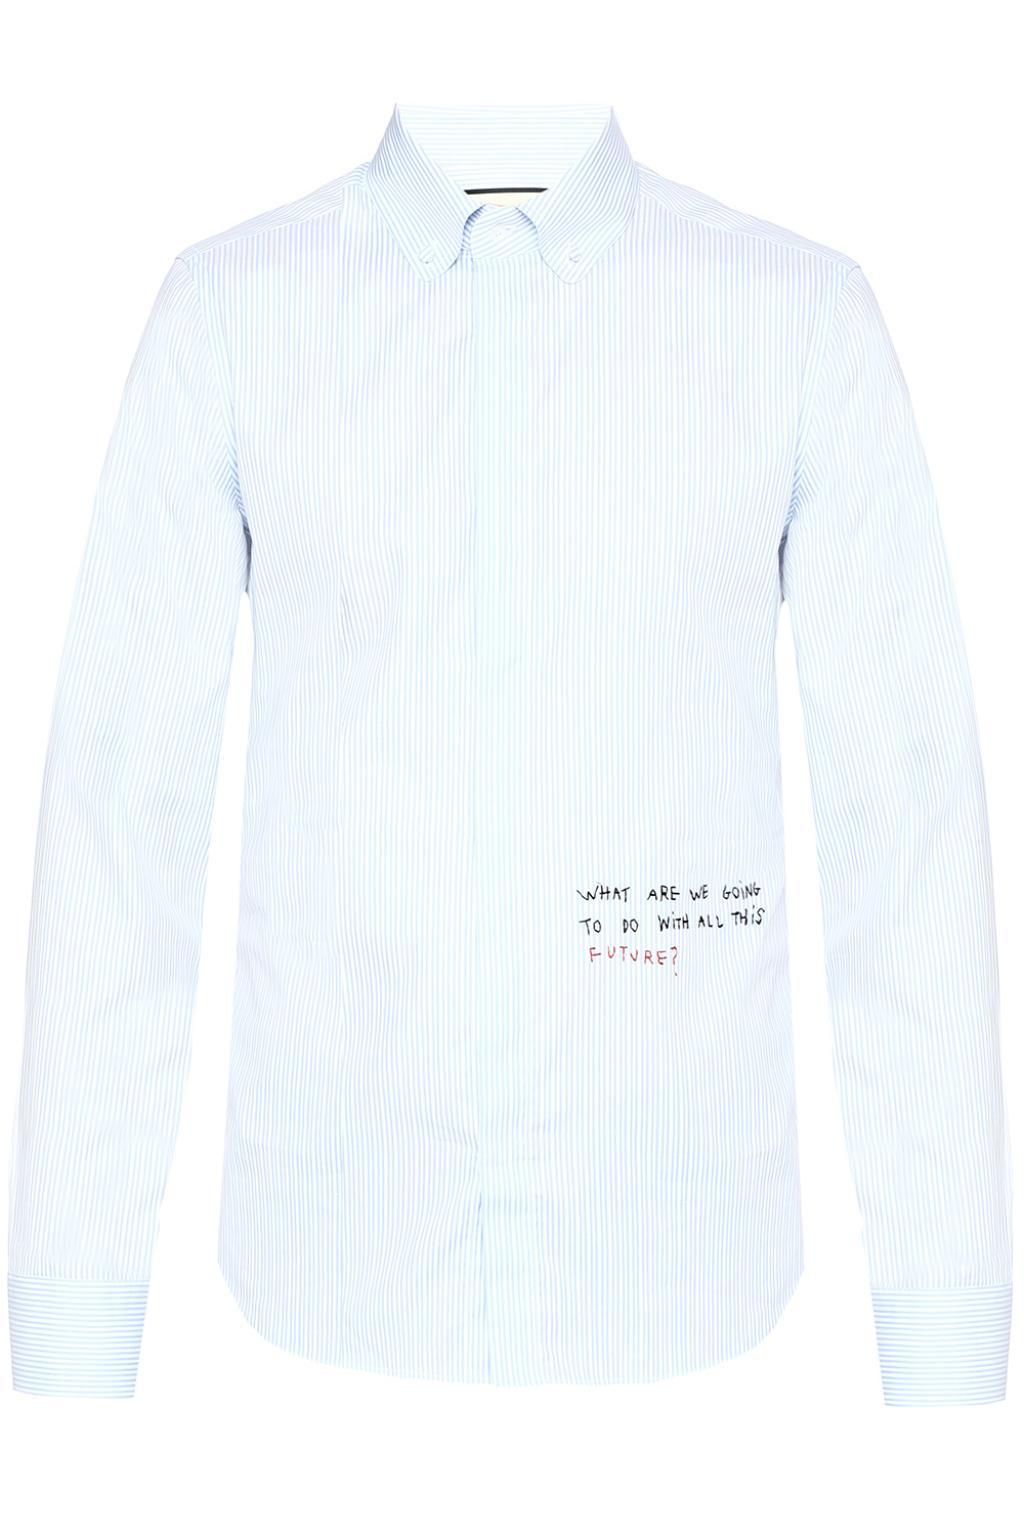 c3b7ada2b0f All White Gucci Shirt – EDGE Engineering and Consulting Limited